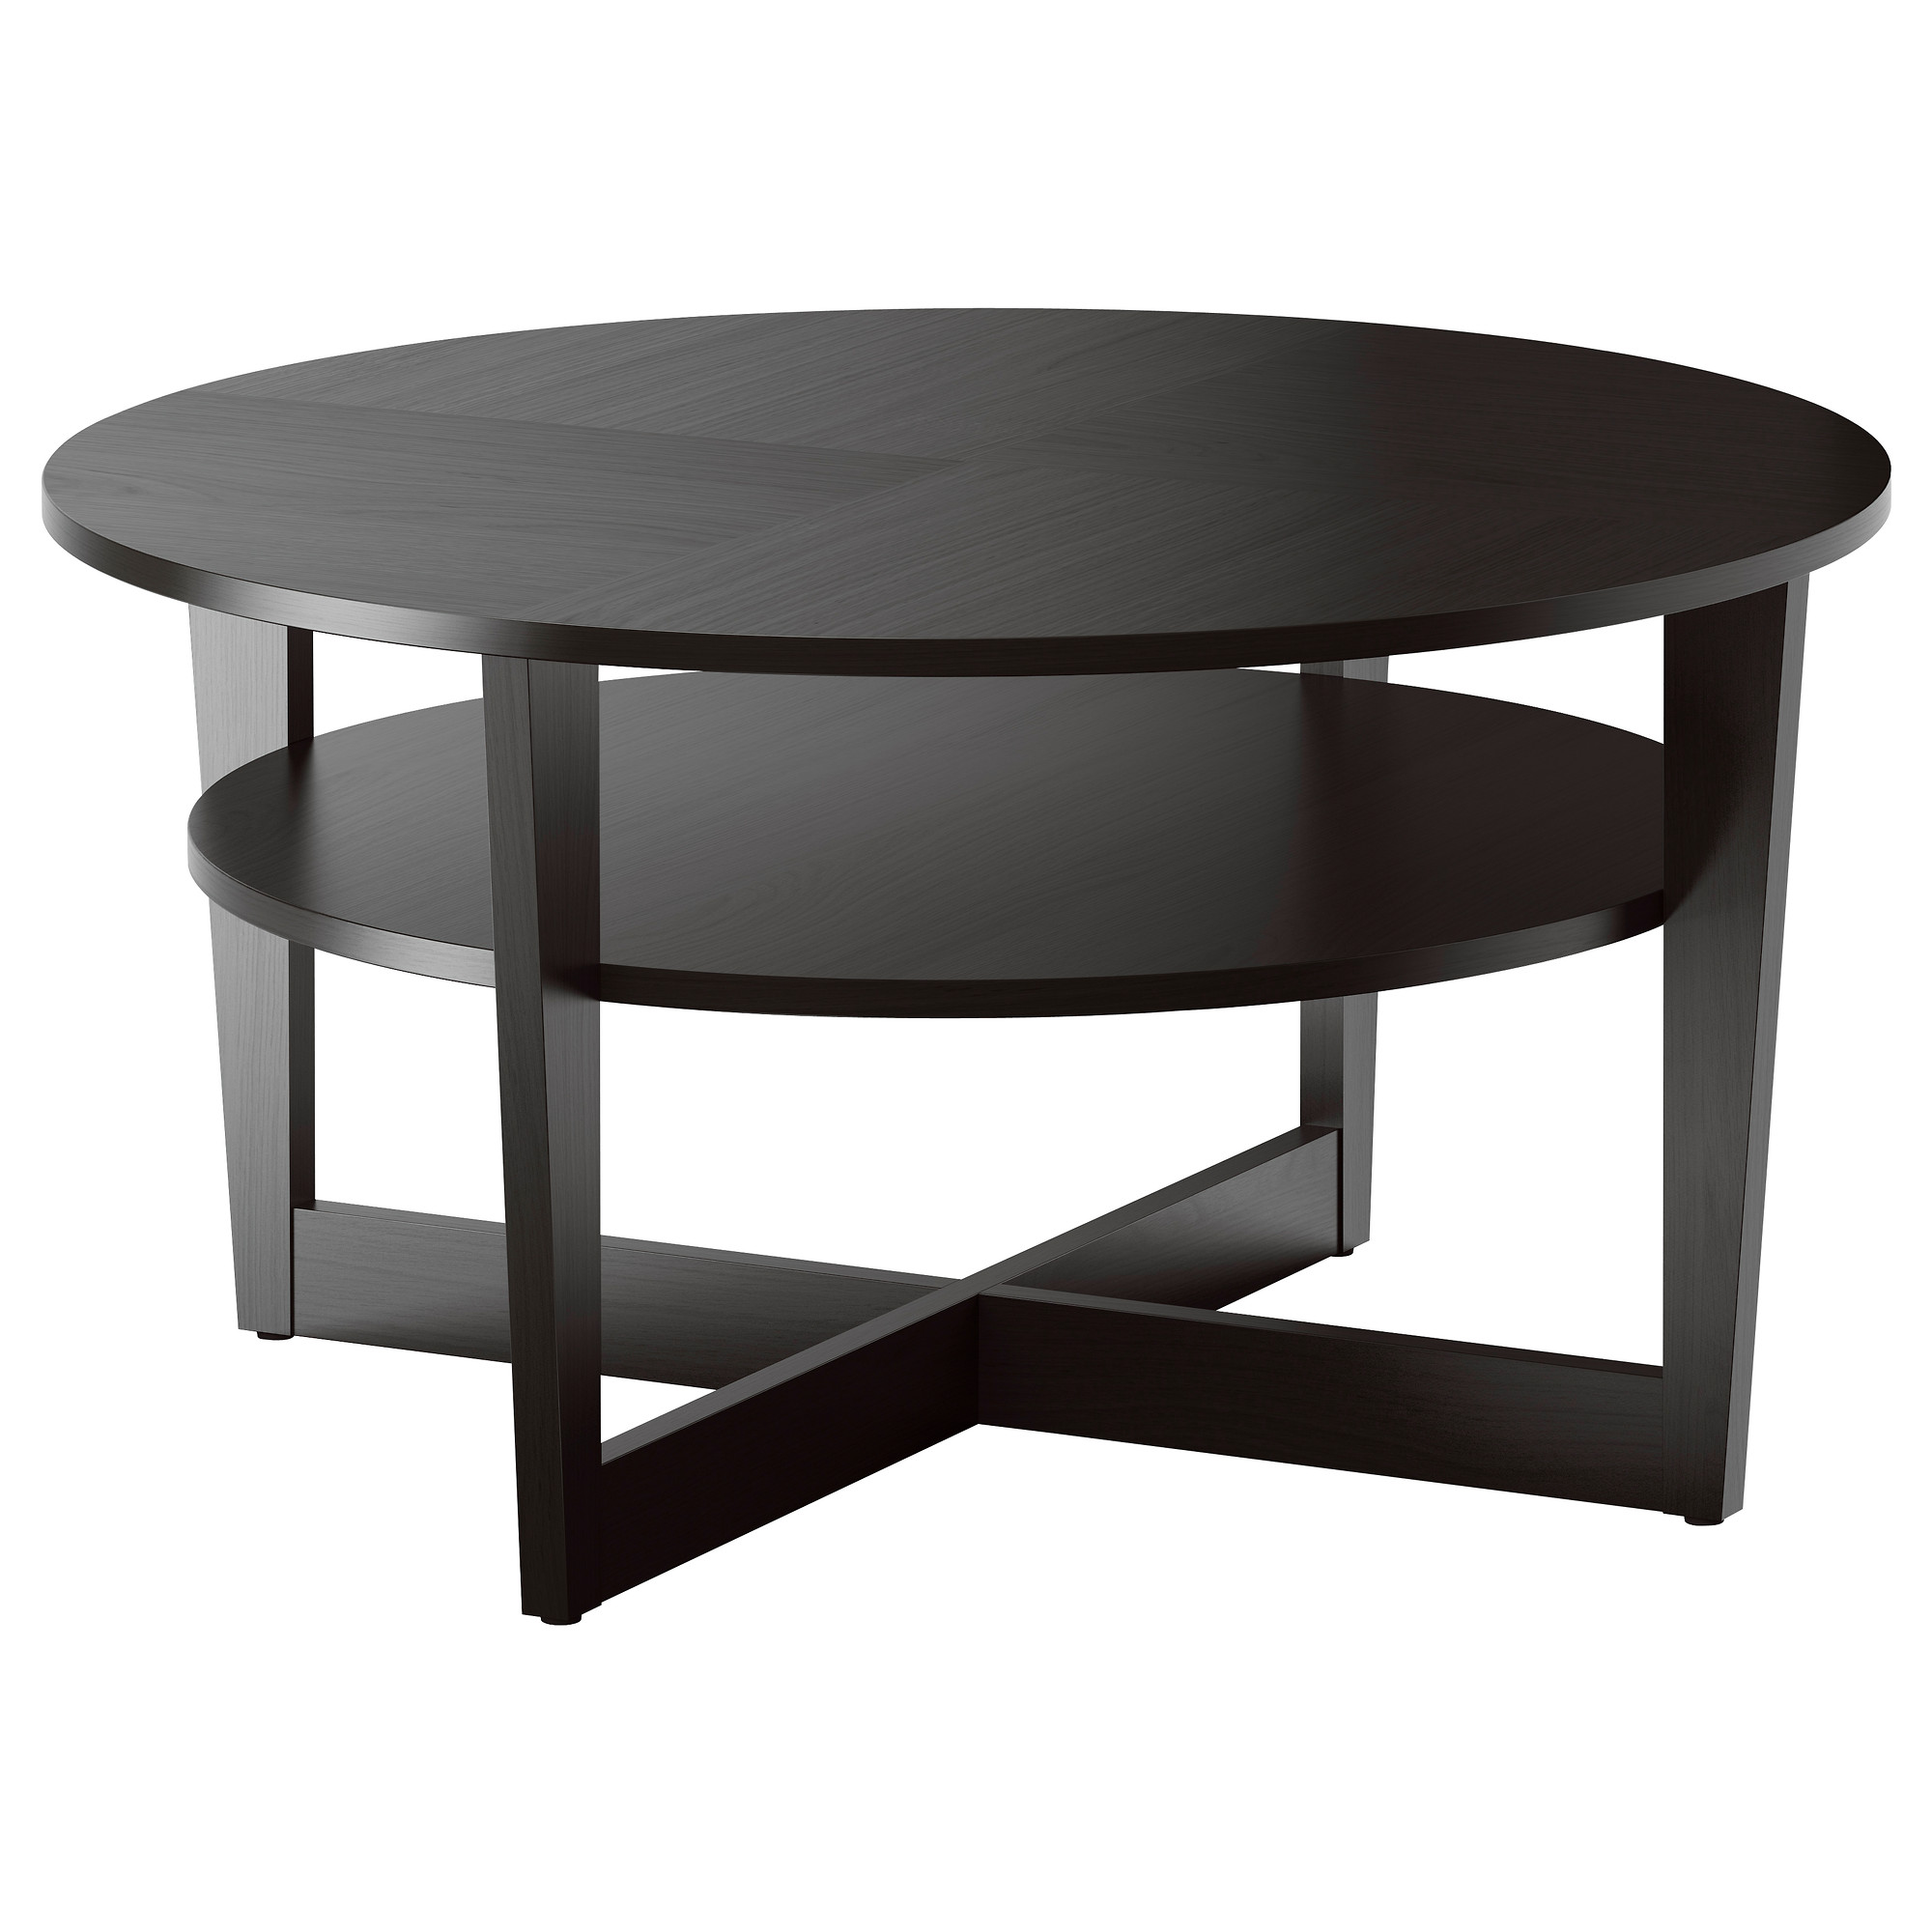 round-coffee-table-ikea-vejmon-coffee-table-black-brown-diameter-35-inch-height-coffee-and-side-tables-furniture (Image 8 of 10)